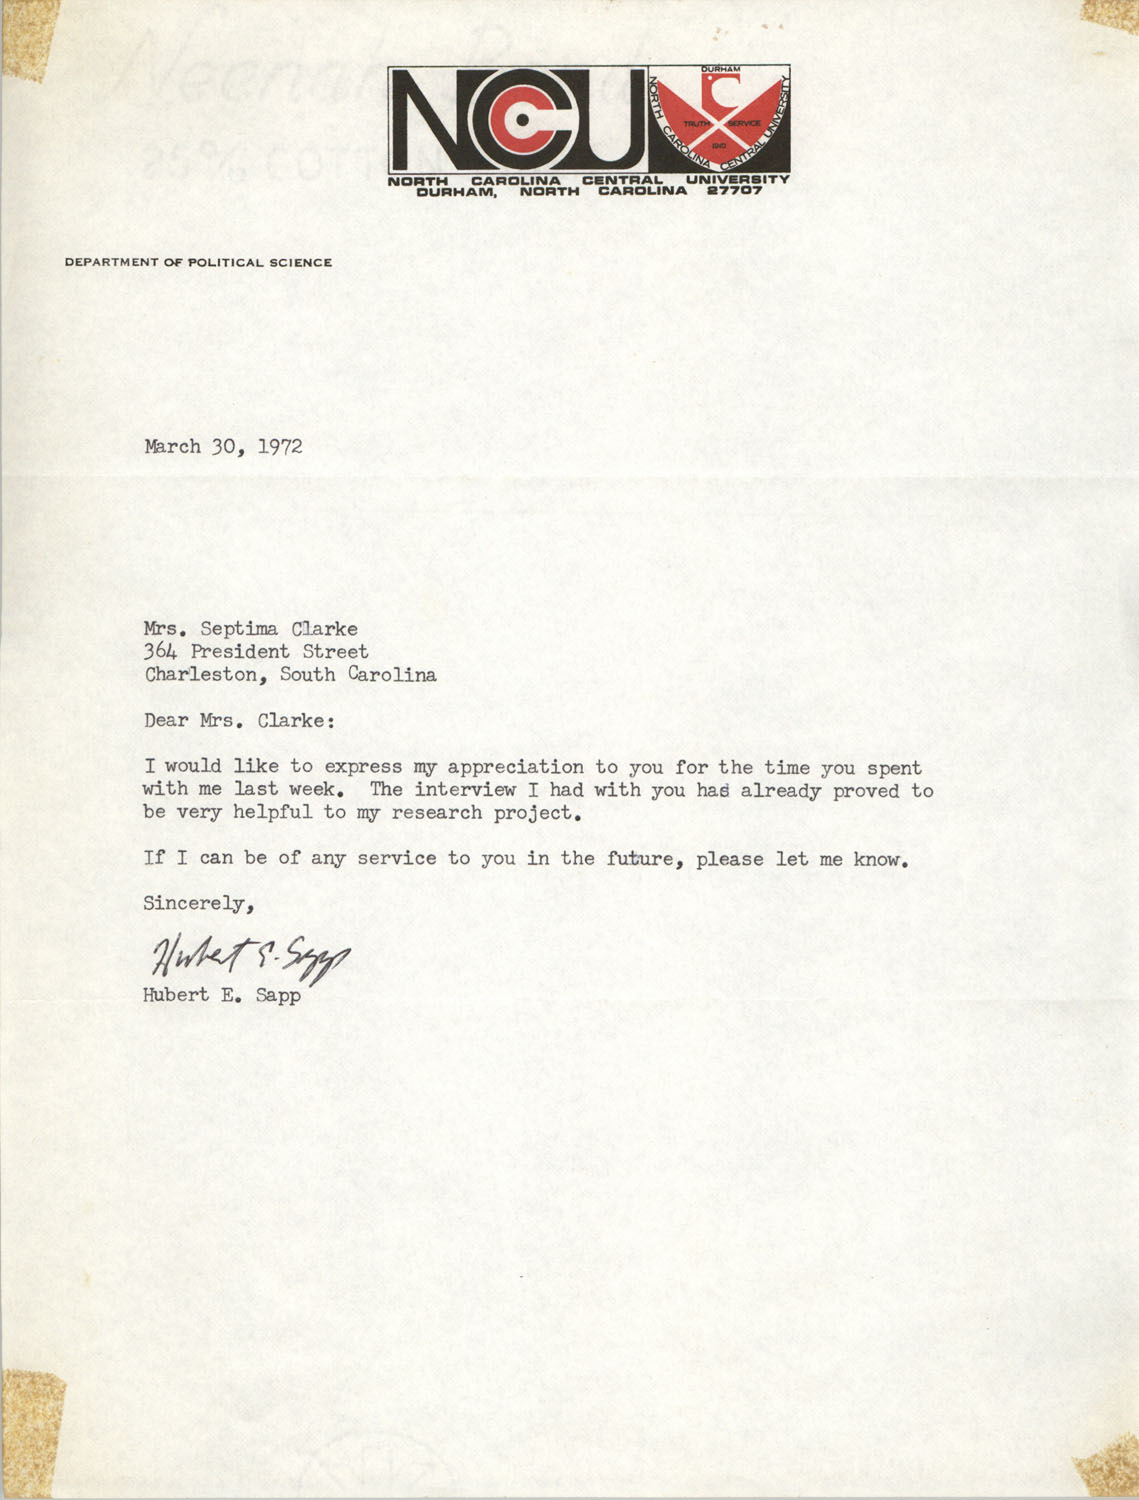 Letter from Hubert E. Sapp to Septima P. Clark, March 30, 1972